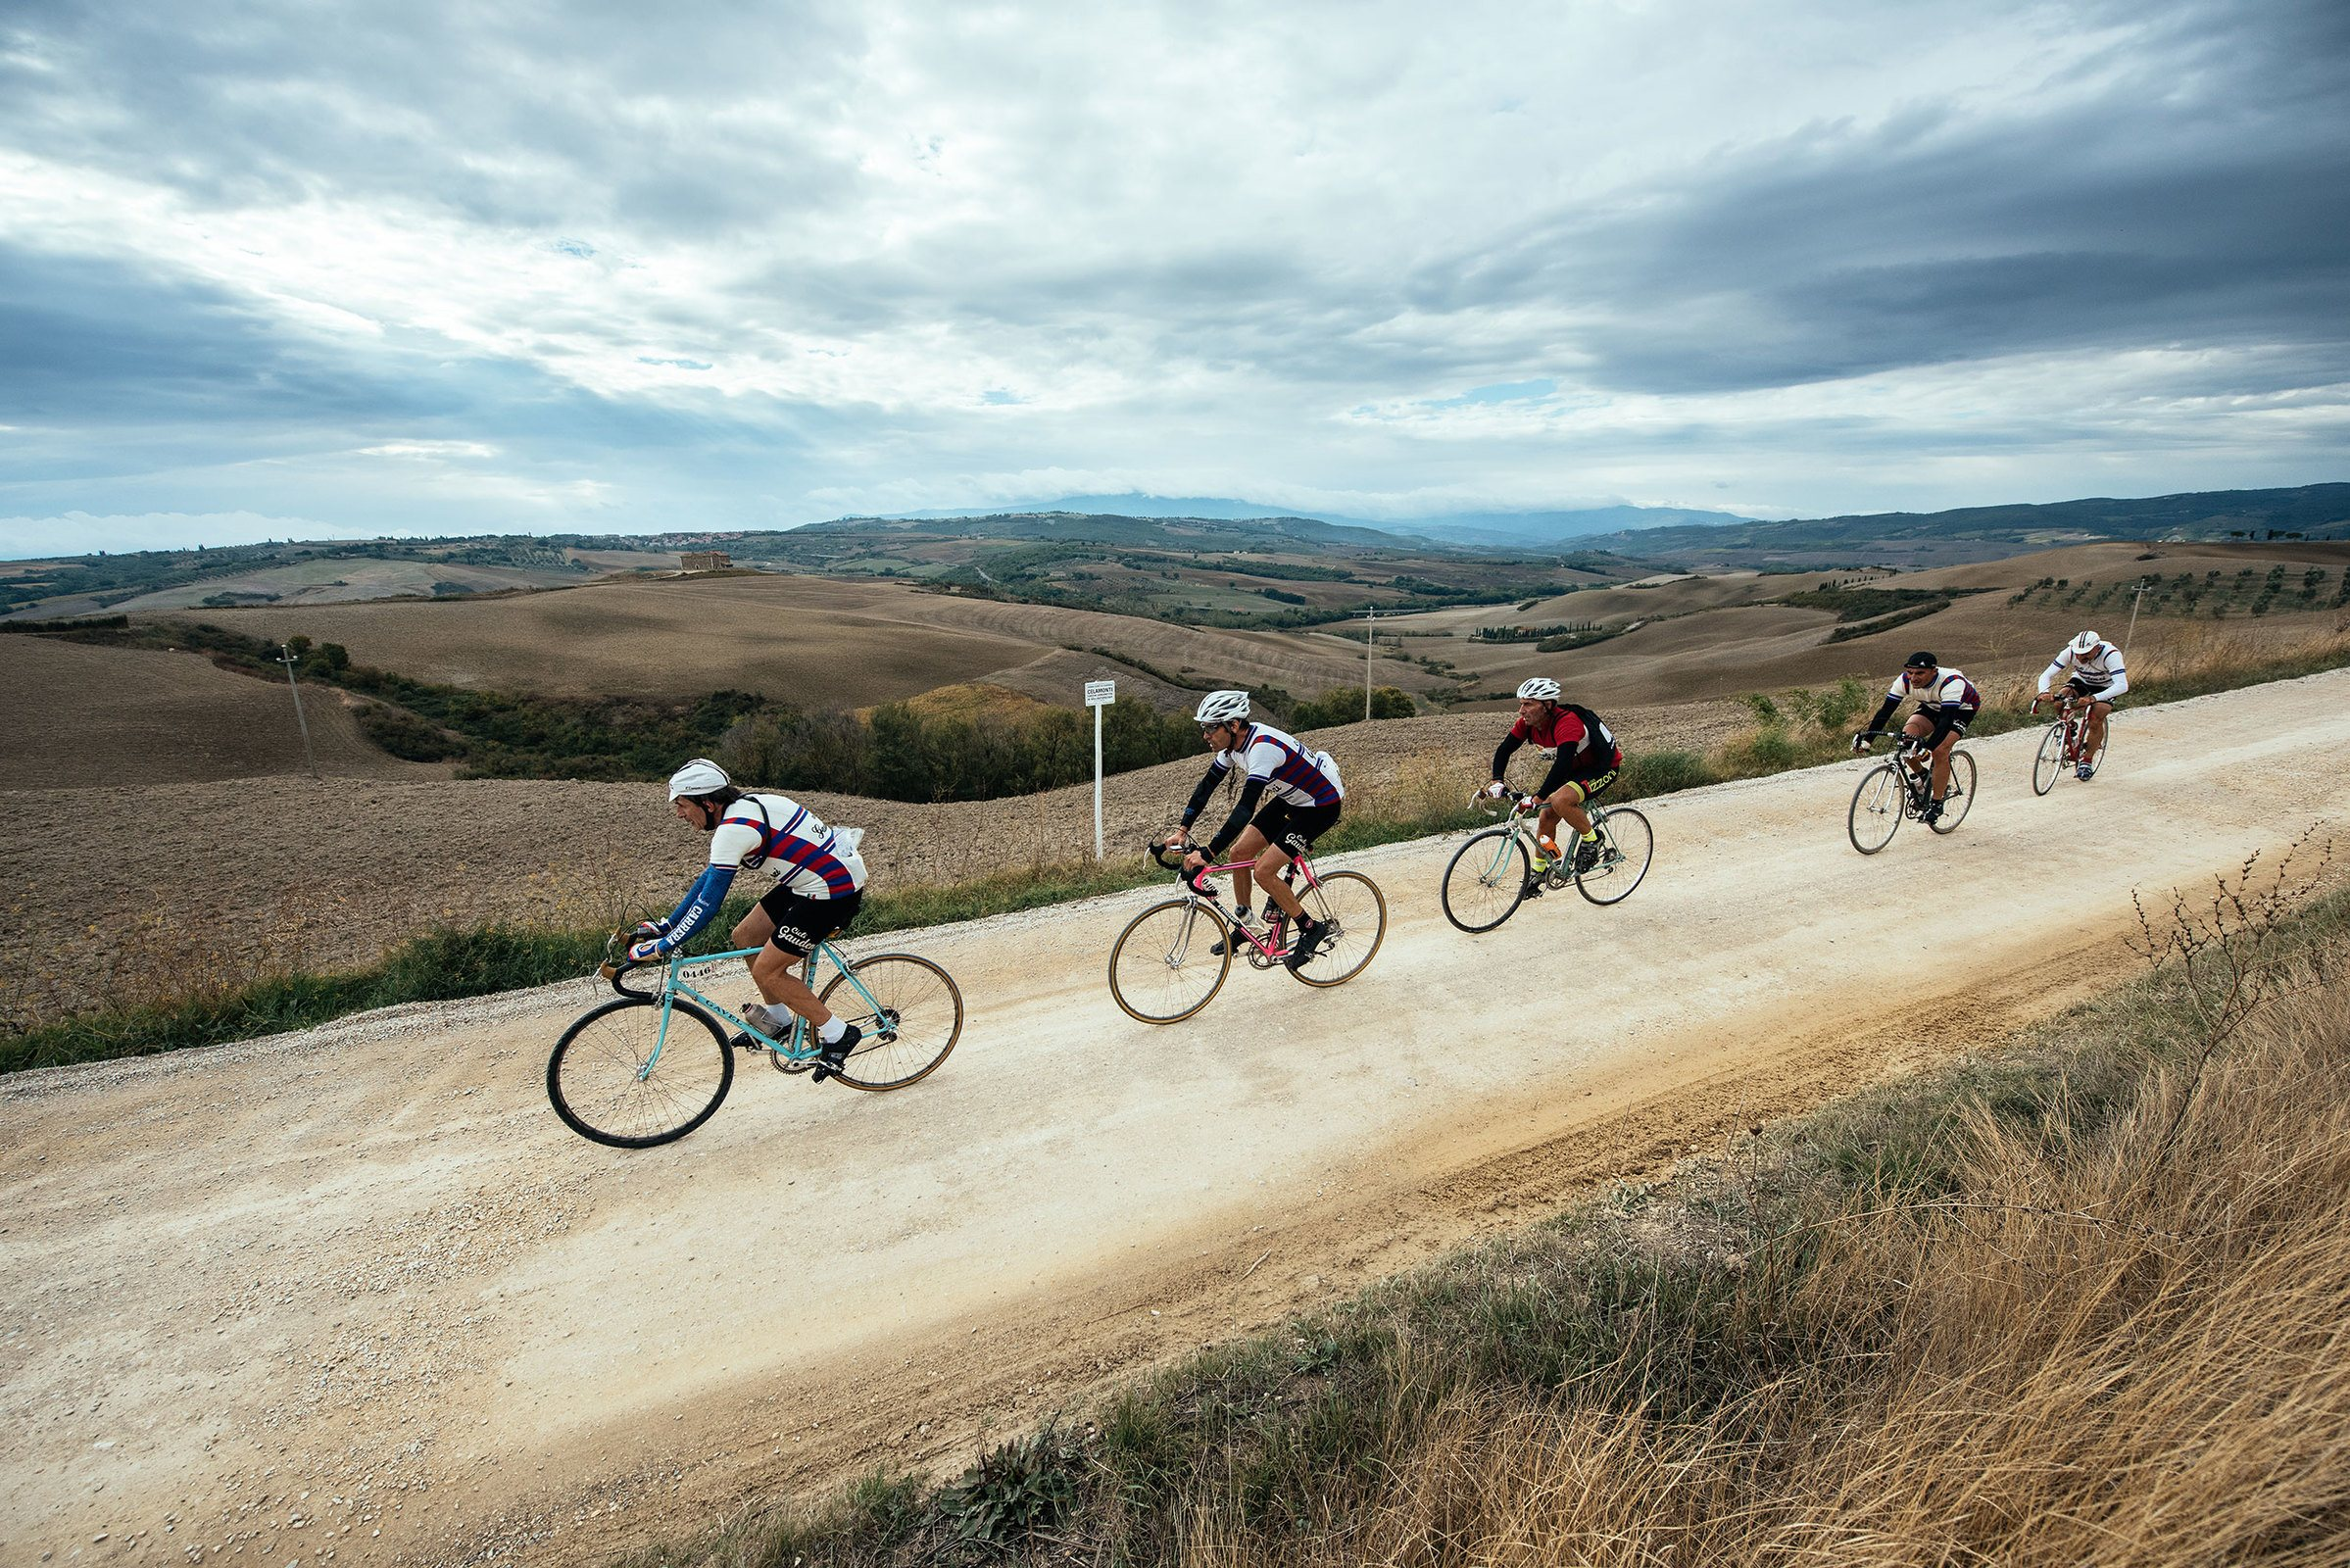 Tuscany's dirt roads reveal a myriad of hidden landscapes.